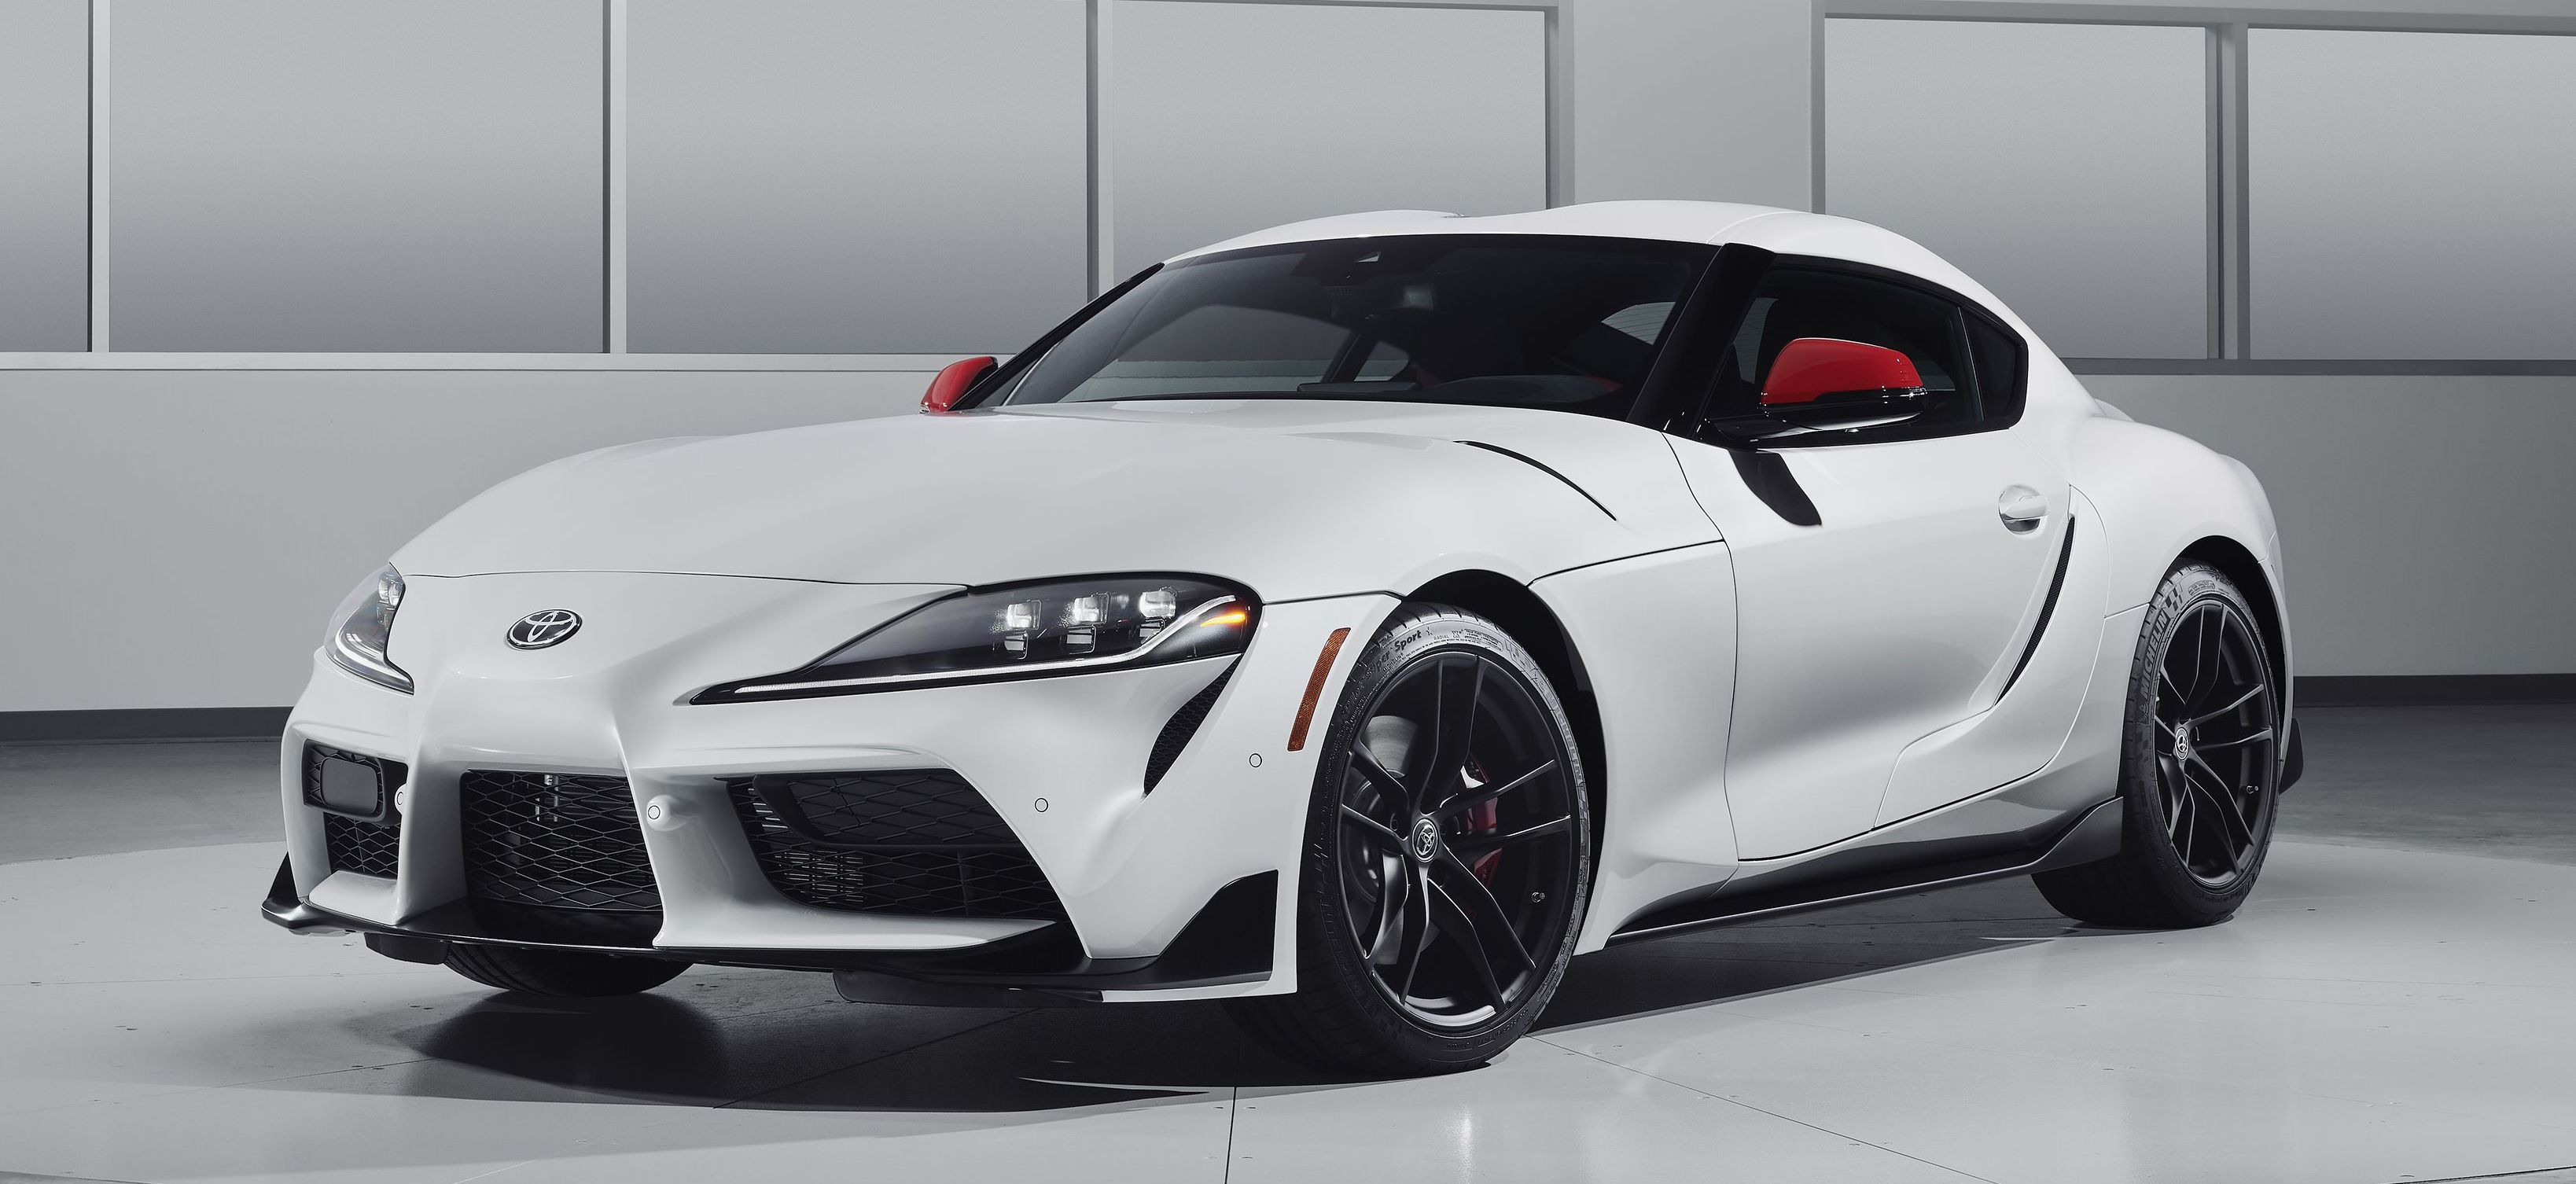 The First 1500 Toyota Supra Buyers Get This Special Launch Edition—and Bidder Buys Supra #1 for $2.1 Million